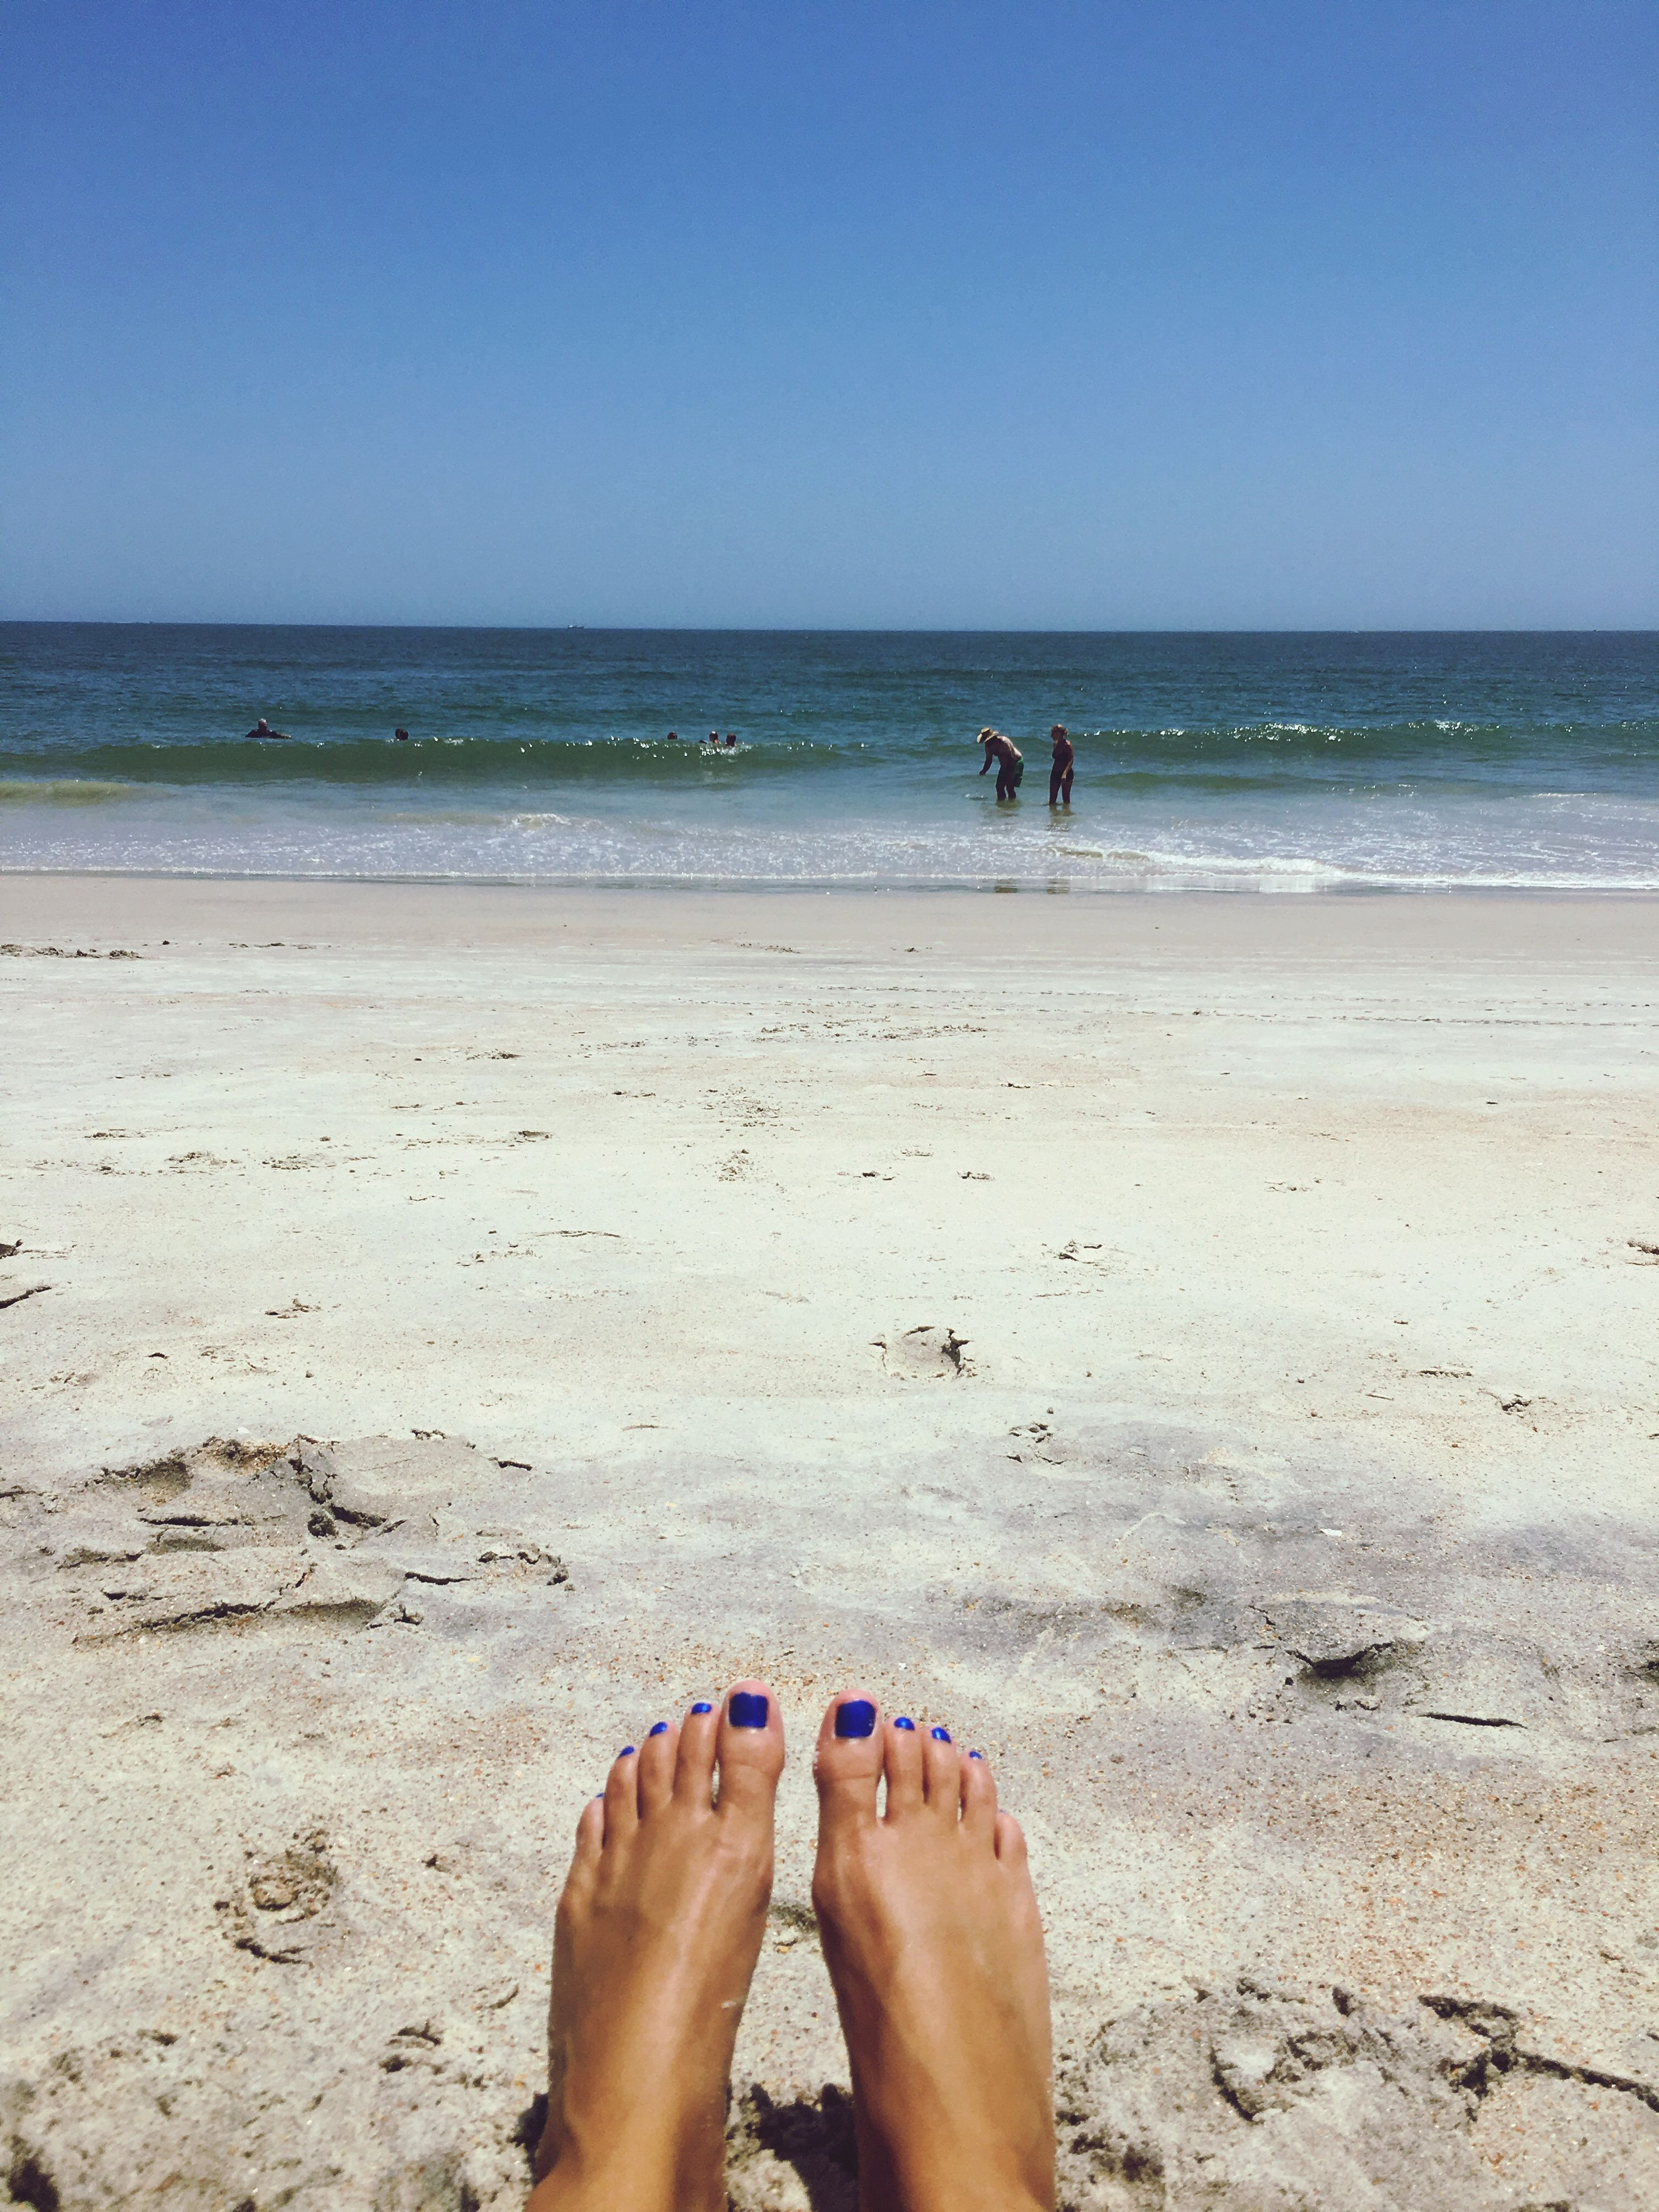 sea, beach, water, horizon over water, sand, real people, shore, scenics, barefoot, clear sky, day, nature, one person, blue, men, low section, human leg, leisure activity, beauty in nature, outdoors, sky, lifestyles, vacations, people